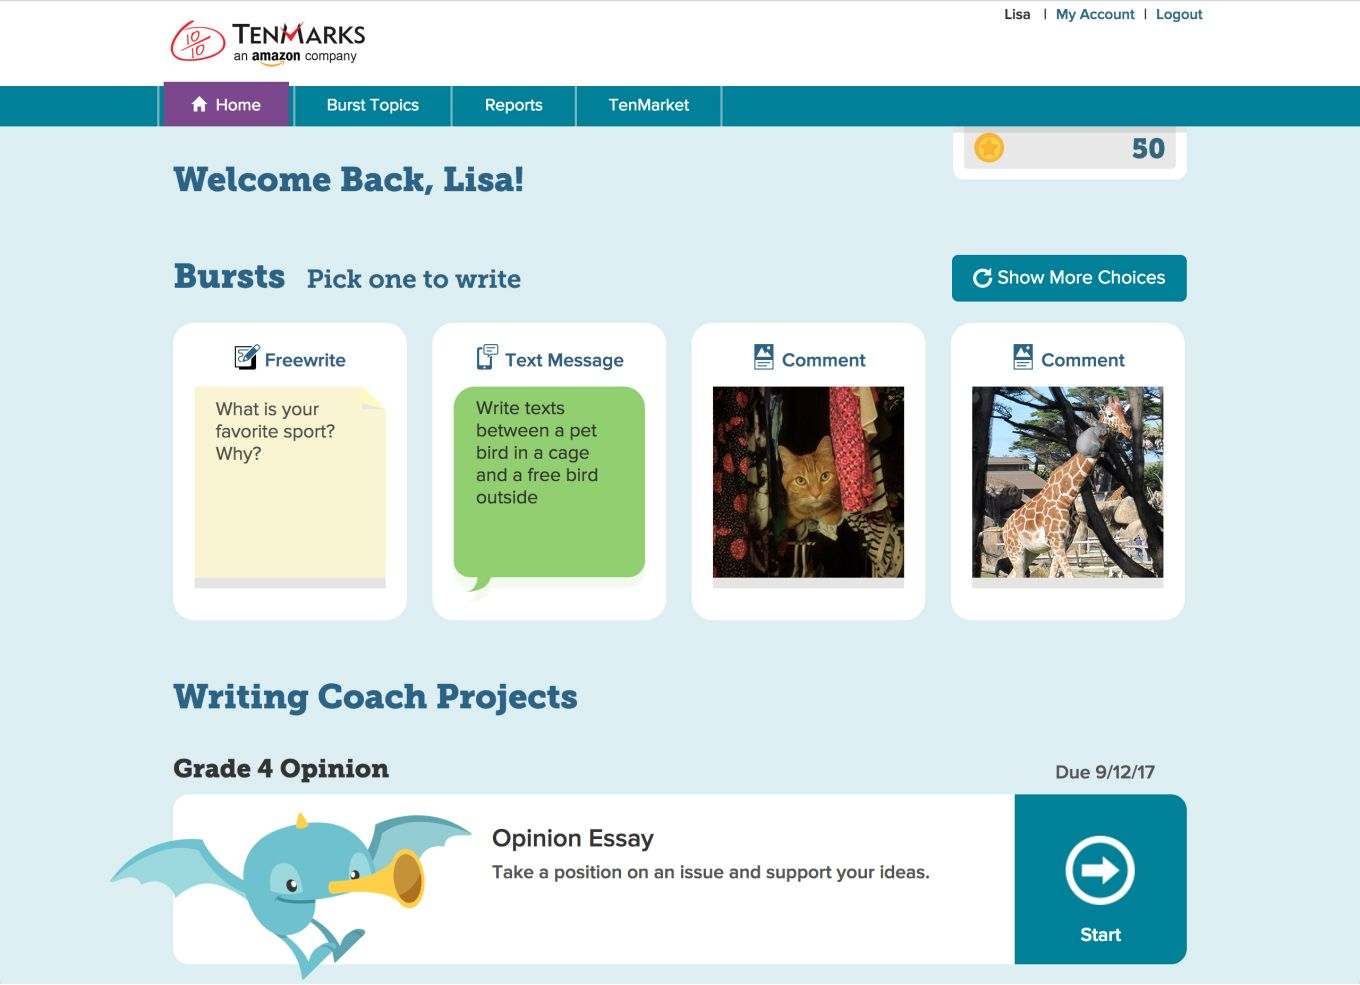 Amazon S TenMarks Releases A New Curriculum For Educators That